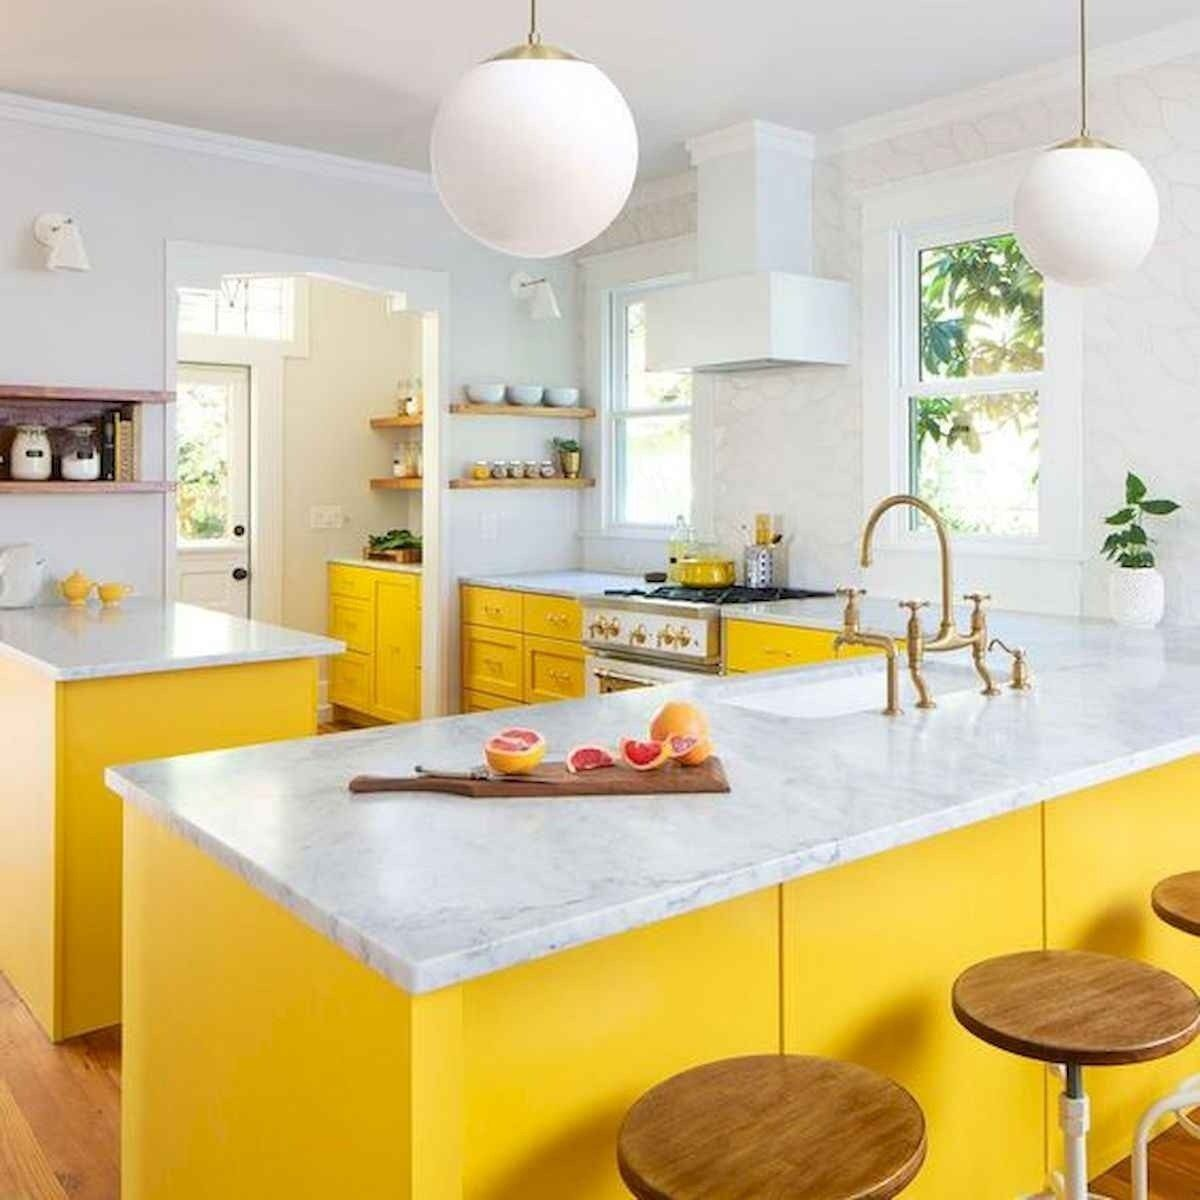 90 Creative Colorful Apartment Decor Ideas And Remodel for Summer Project 43 apartment #90 #creative #colorful #apartment #decor #ideas #and #remodel #for #summer #project #43